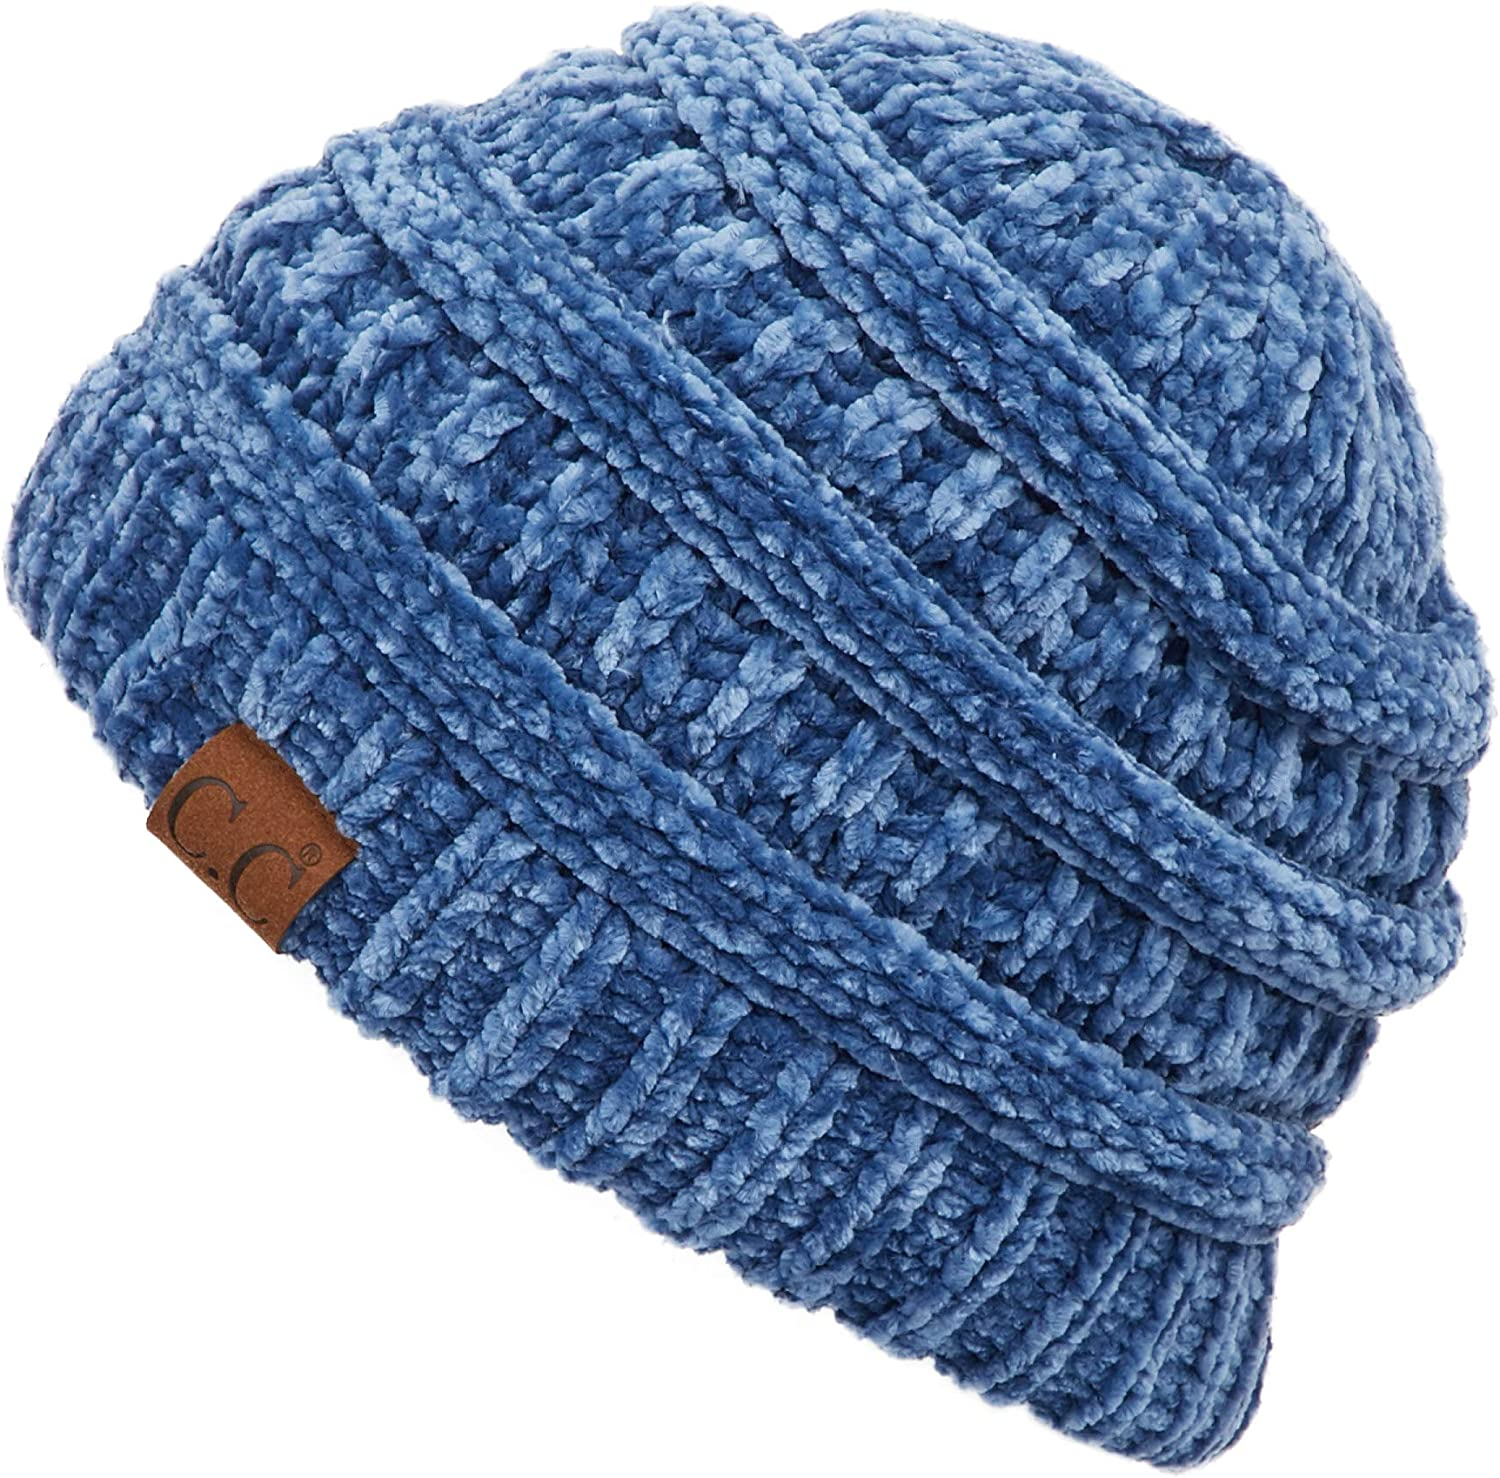 C.C Exclusives Cable Knit Beanie - Thick, Soft & Warm Chunky Beanie Hats (HAT-20A)(HAT-30)(HAT-730)